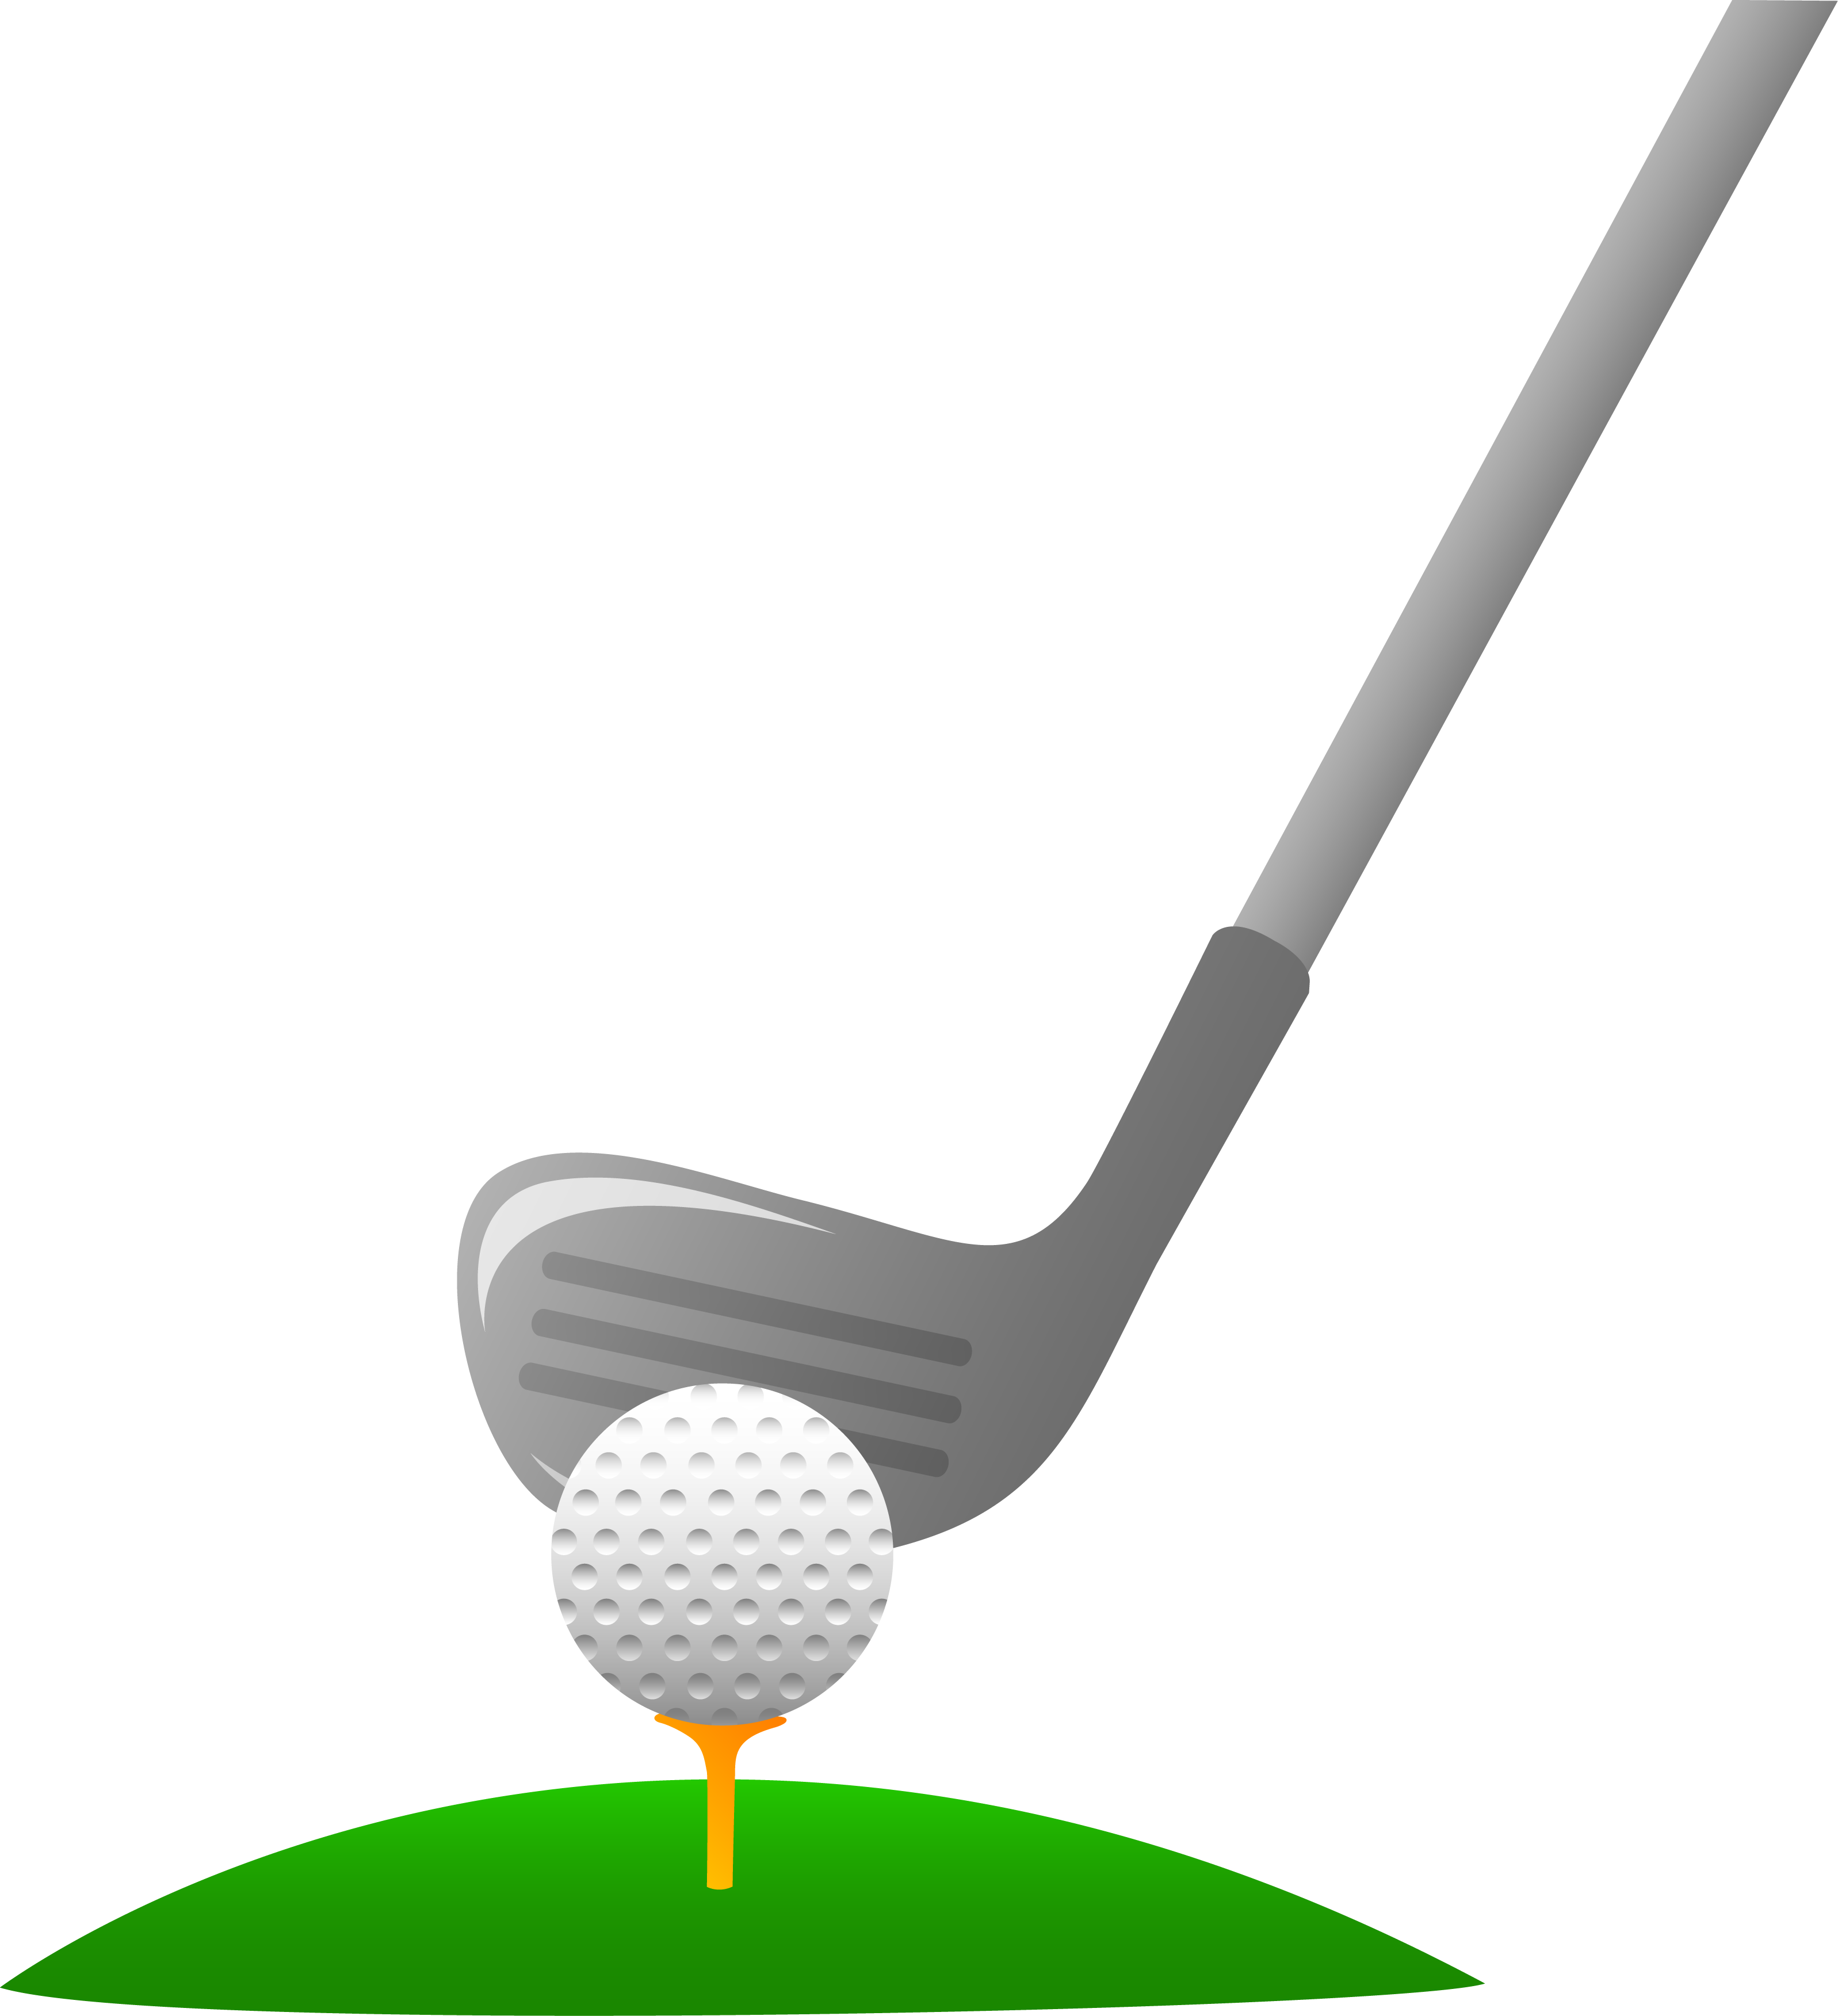 Golf Ball clipart kid golf Golf Club Art 3 club